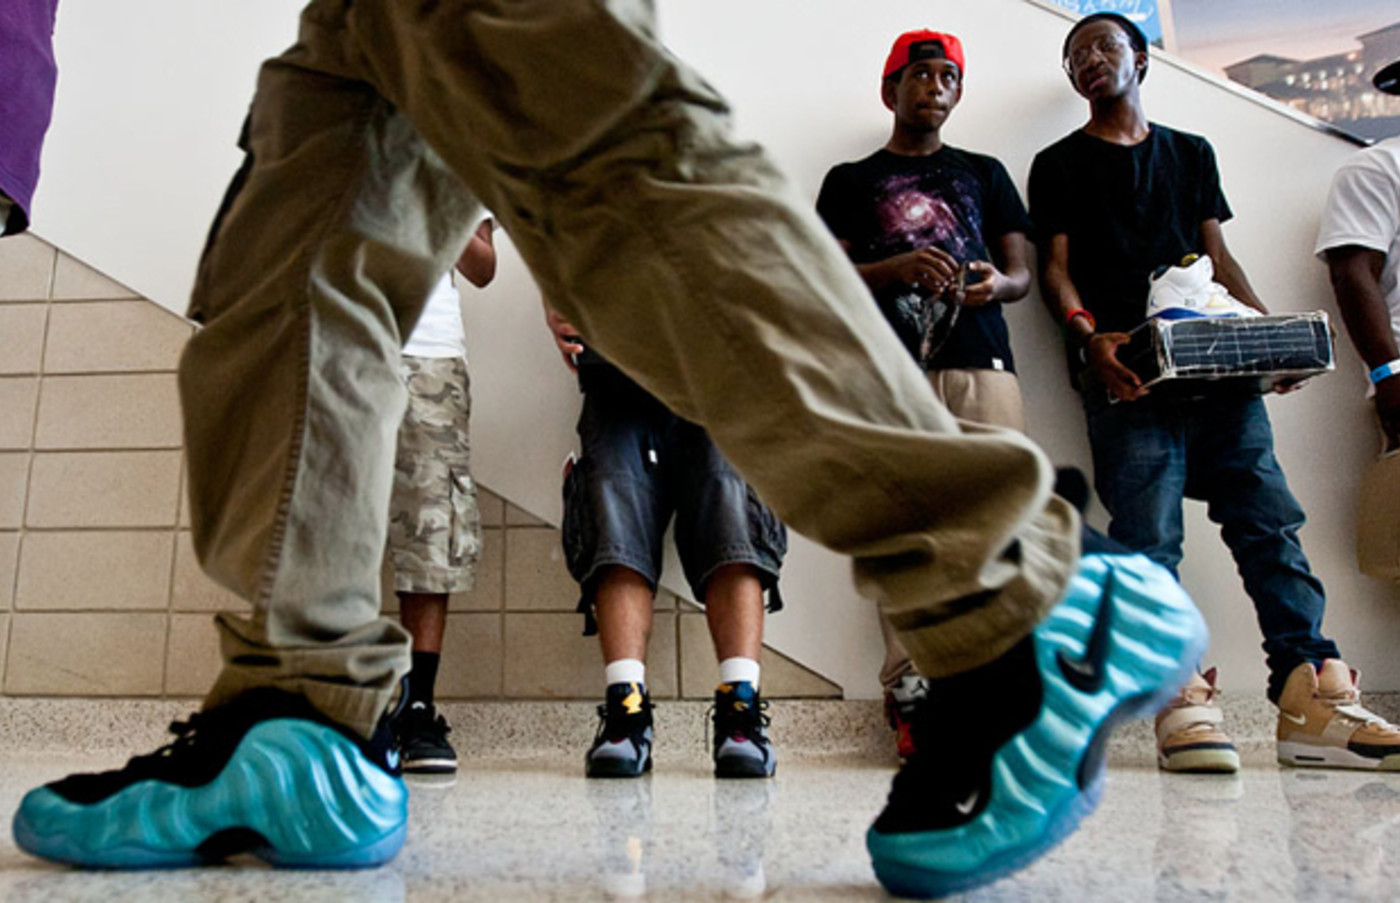 10 Things Every Sneakerhead Should Do